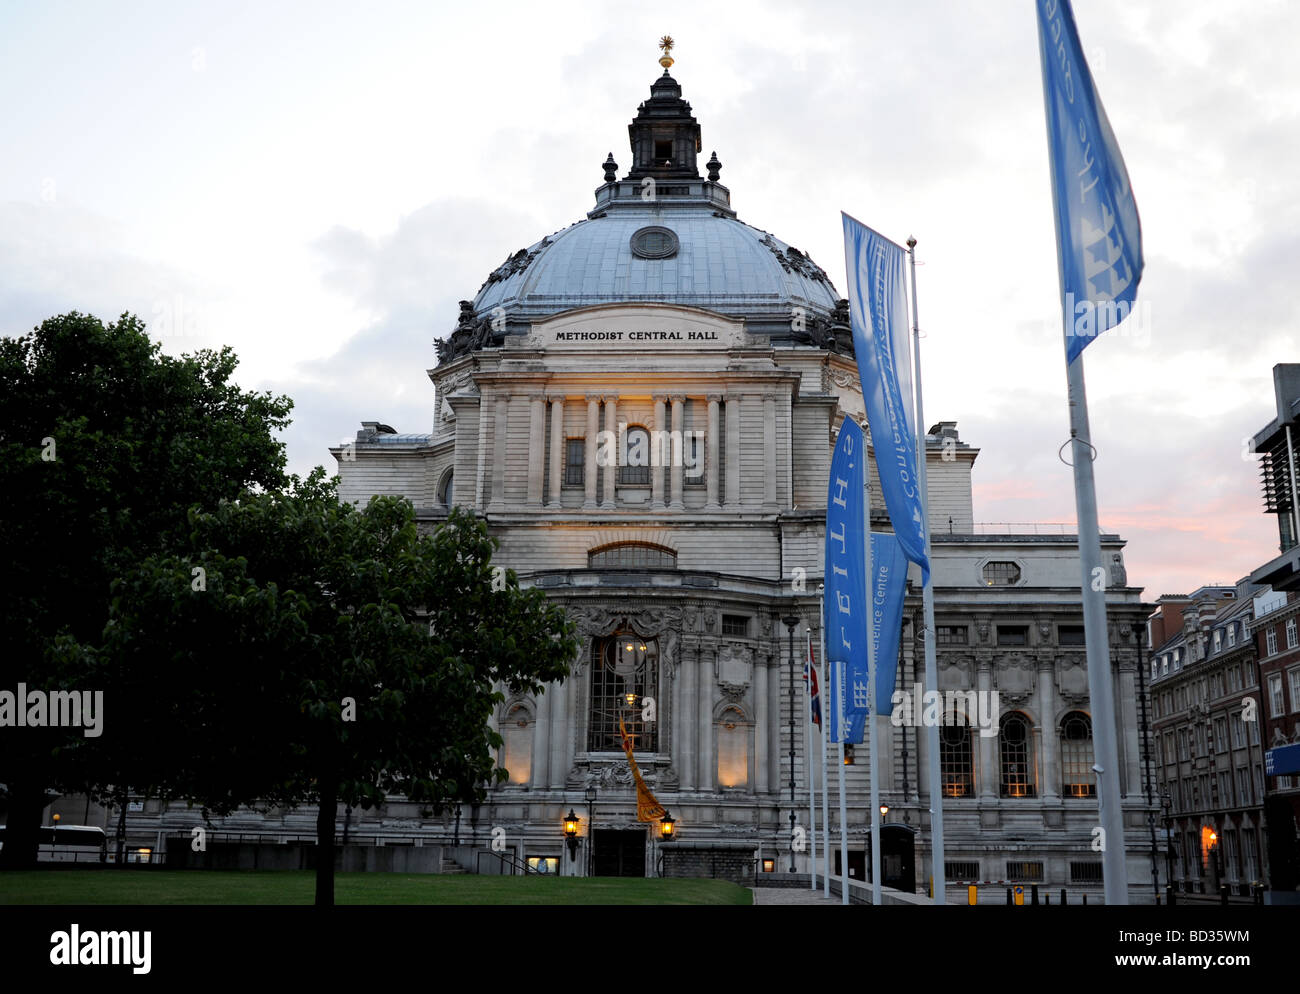 The Methodist Central Hall in London at dusk - Stock Image